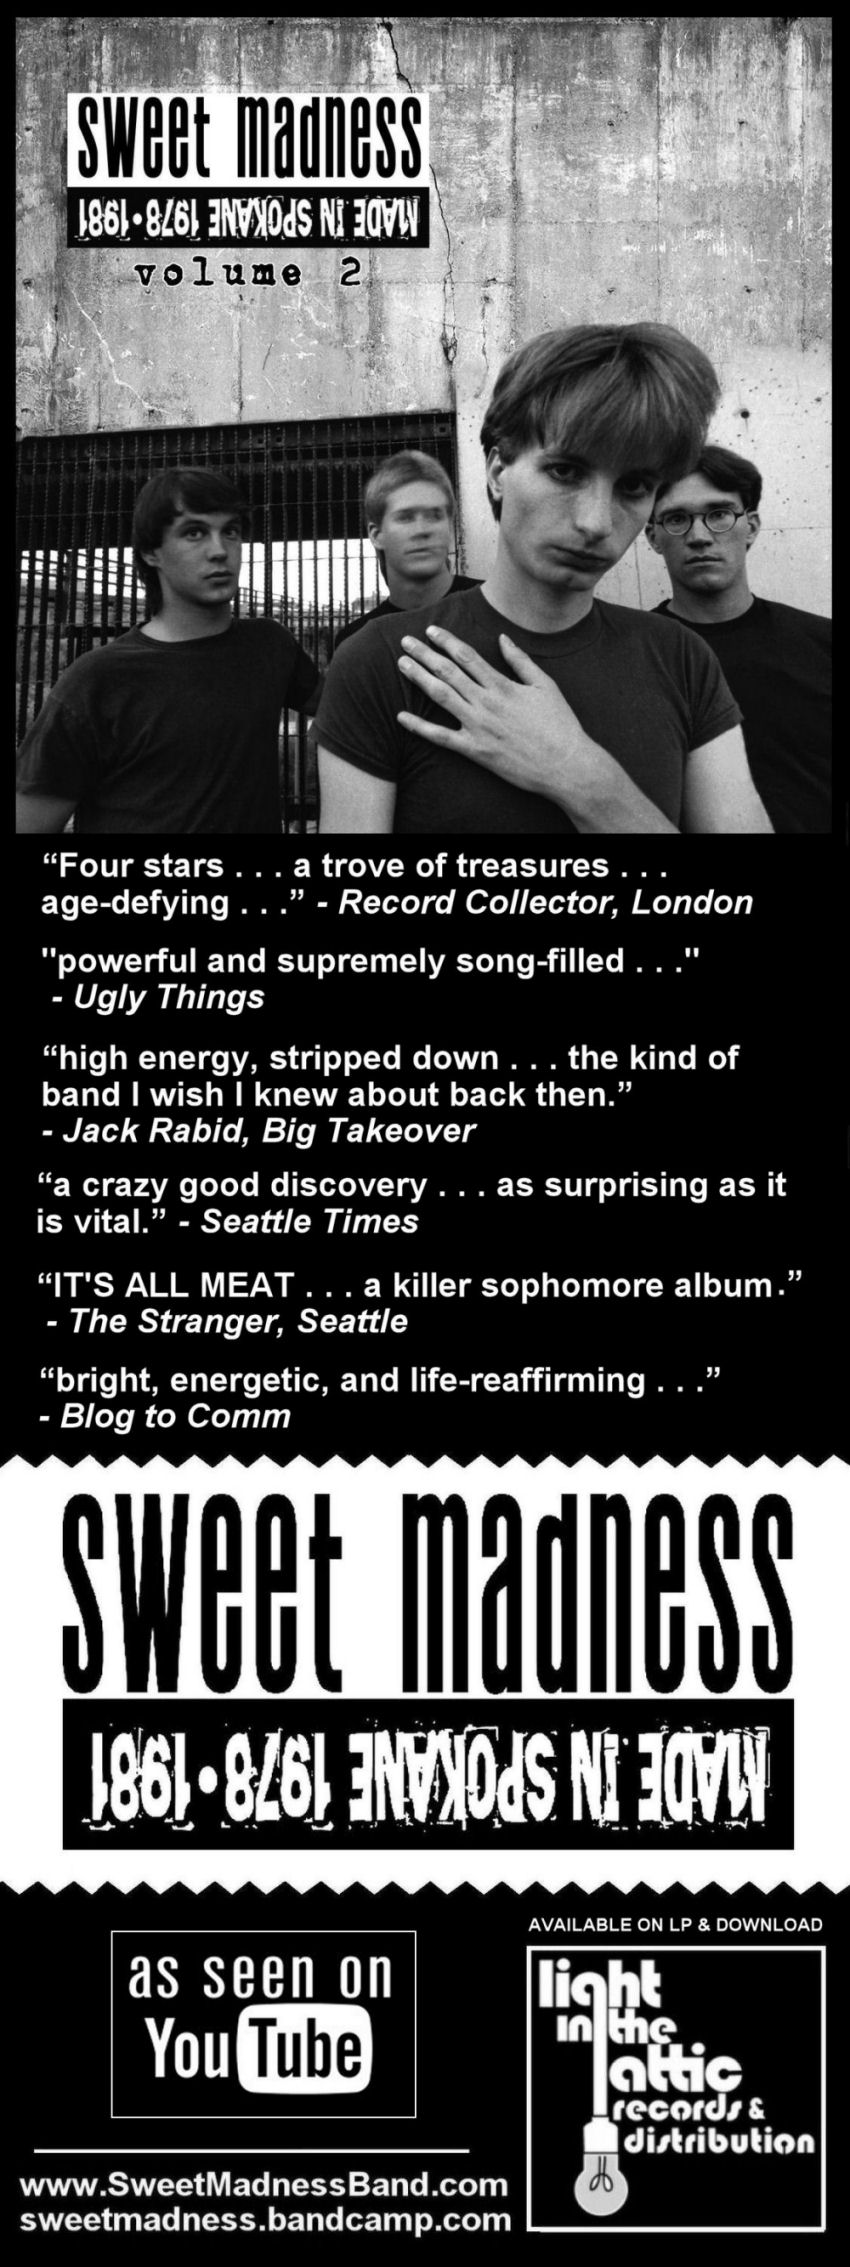 Sweet Madness review, post-punk, new wave, power pop